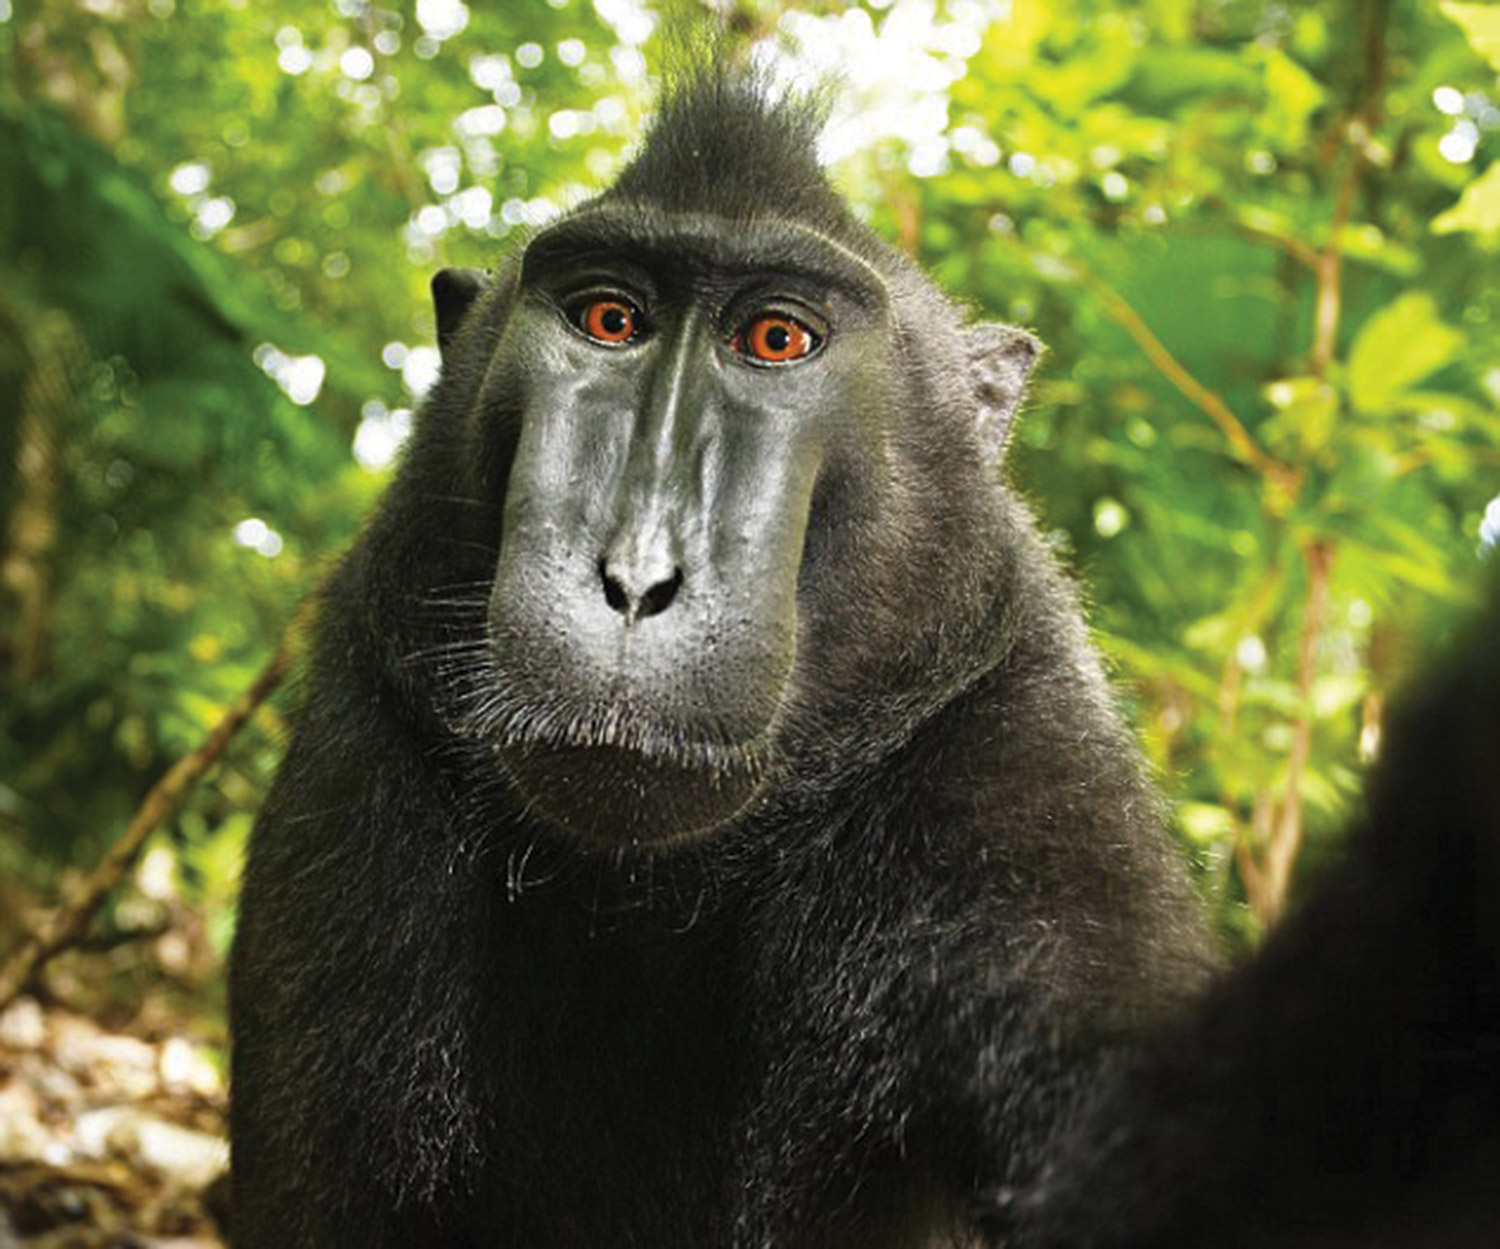 A selfie taken by macaque monkey in Indonesia. Wikimedia, the US Copyright Office and the Ninth Circuit all asserted that images created by animals fall into public domain. Courtesy of Wikimedia Commons.